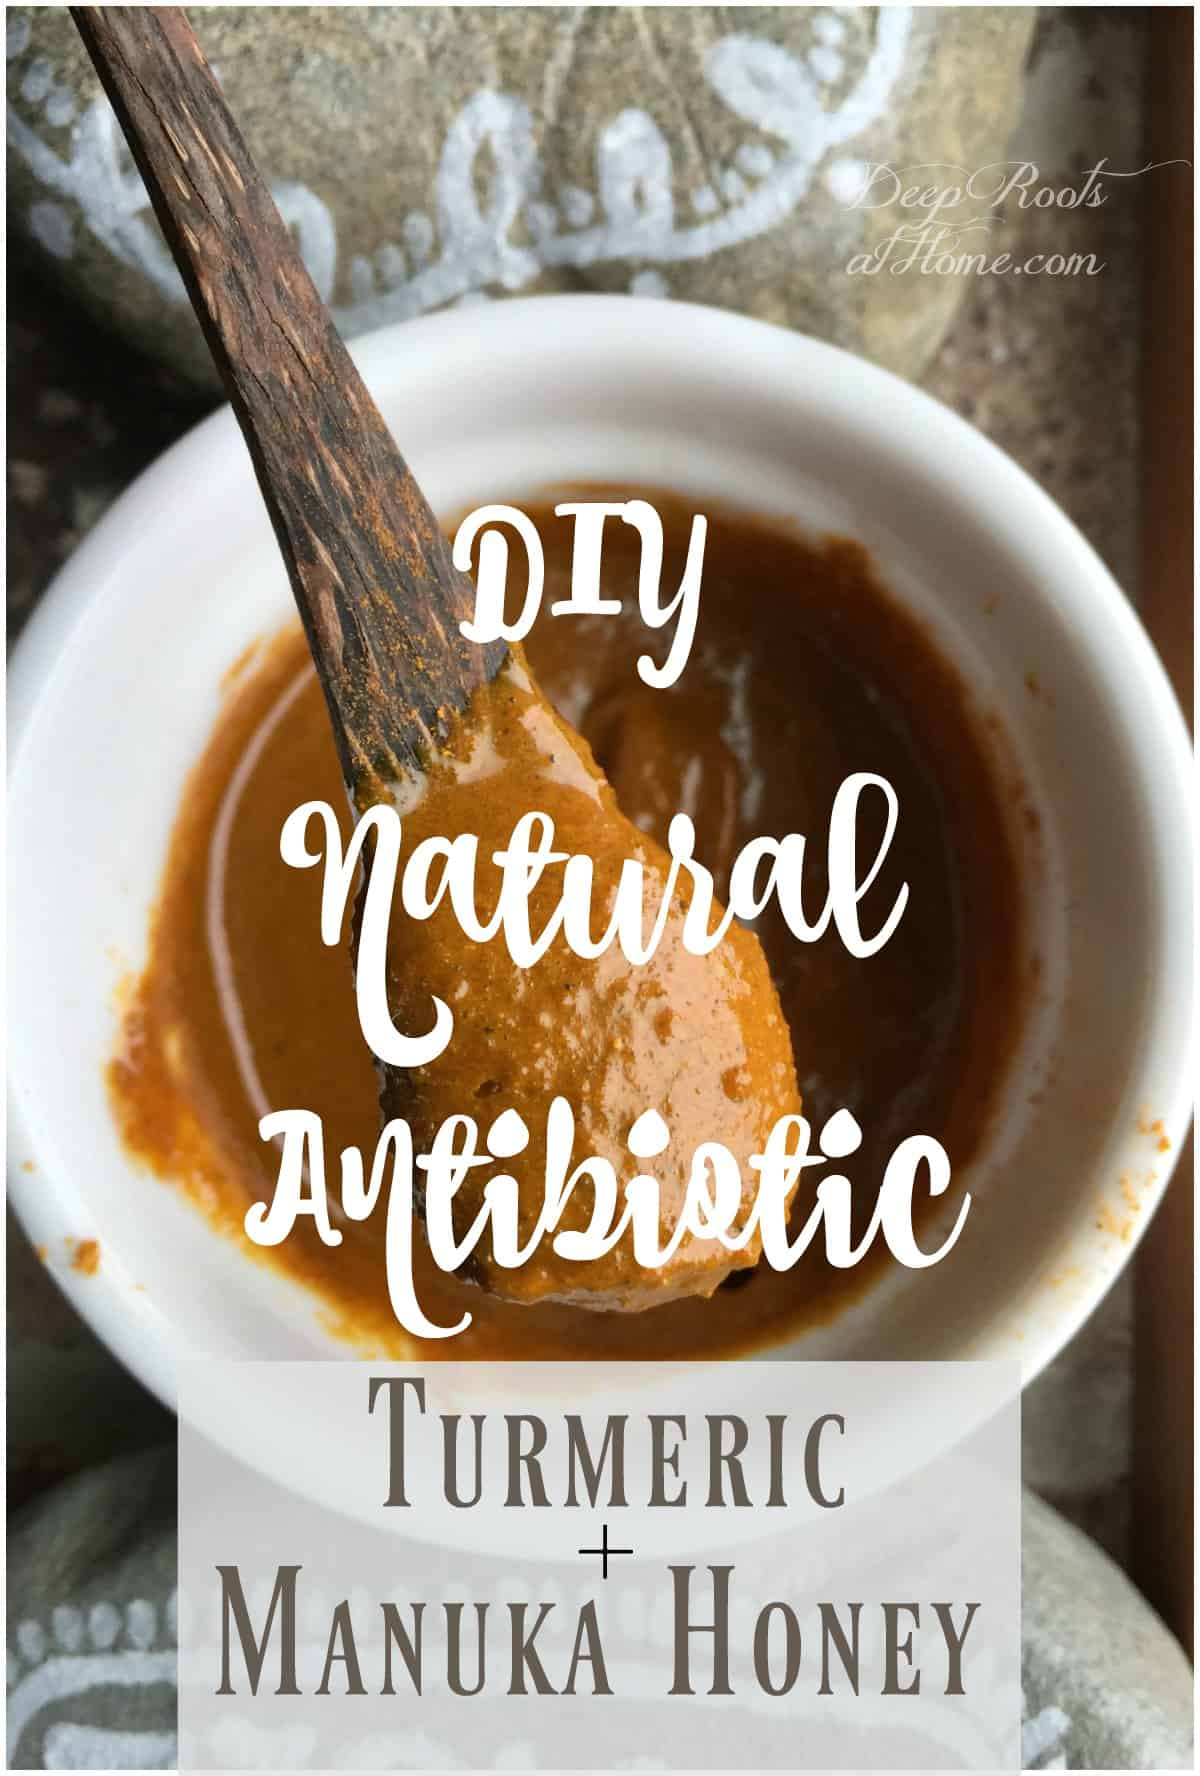 DIY Natural Antibiotic Recipe using Turmeric and Manuka Honey. A mixture of turmeric and manuka honey on a wooden spoon.